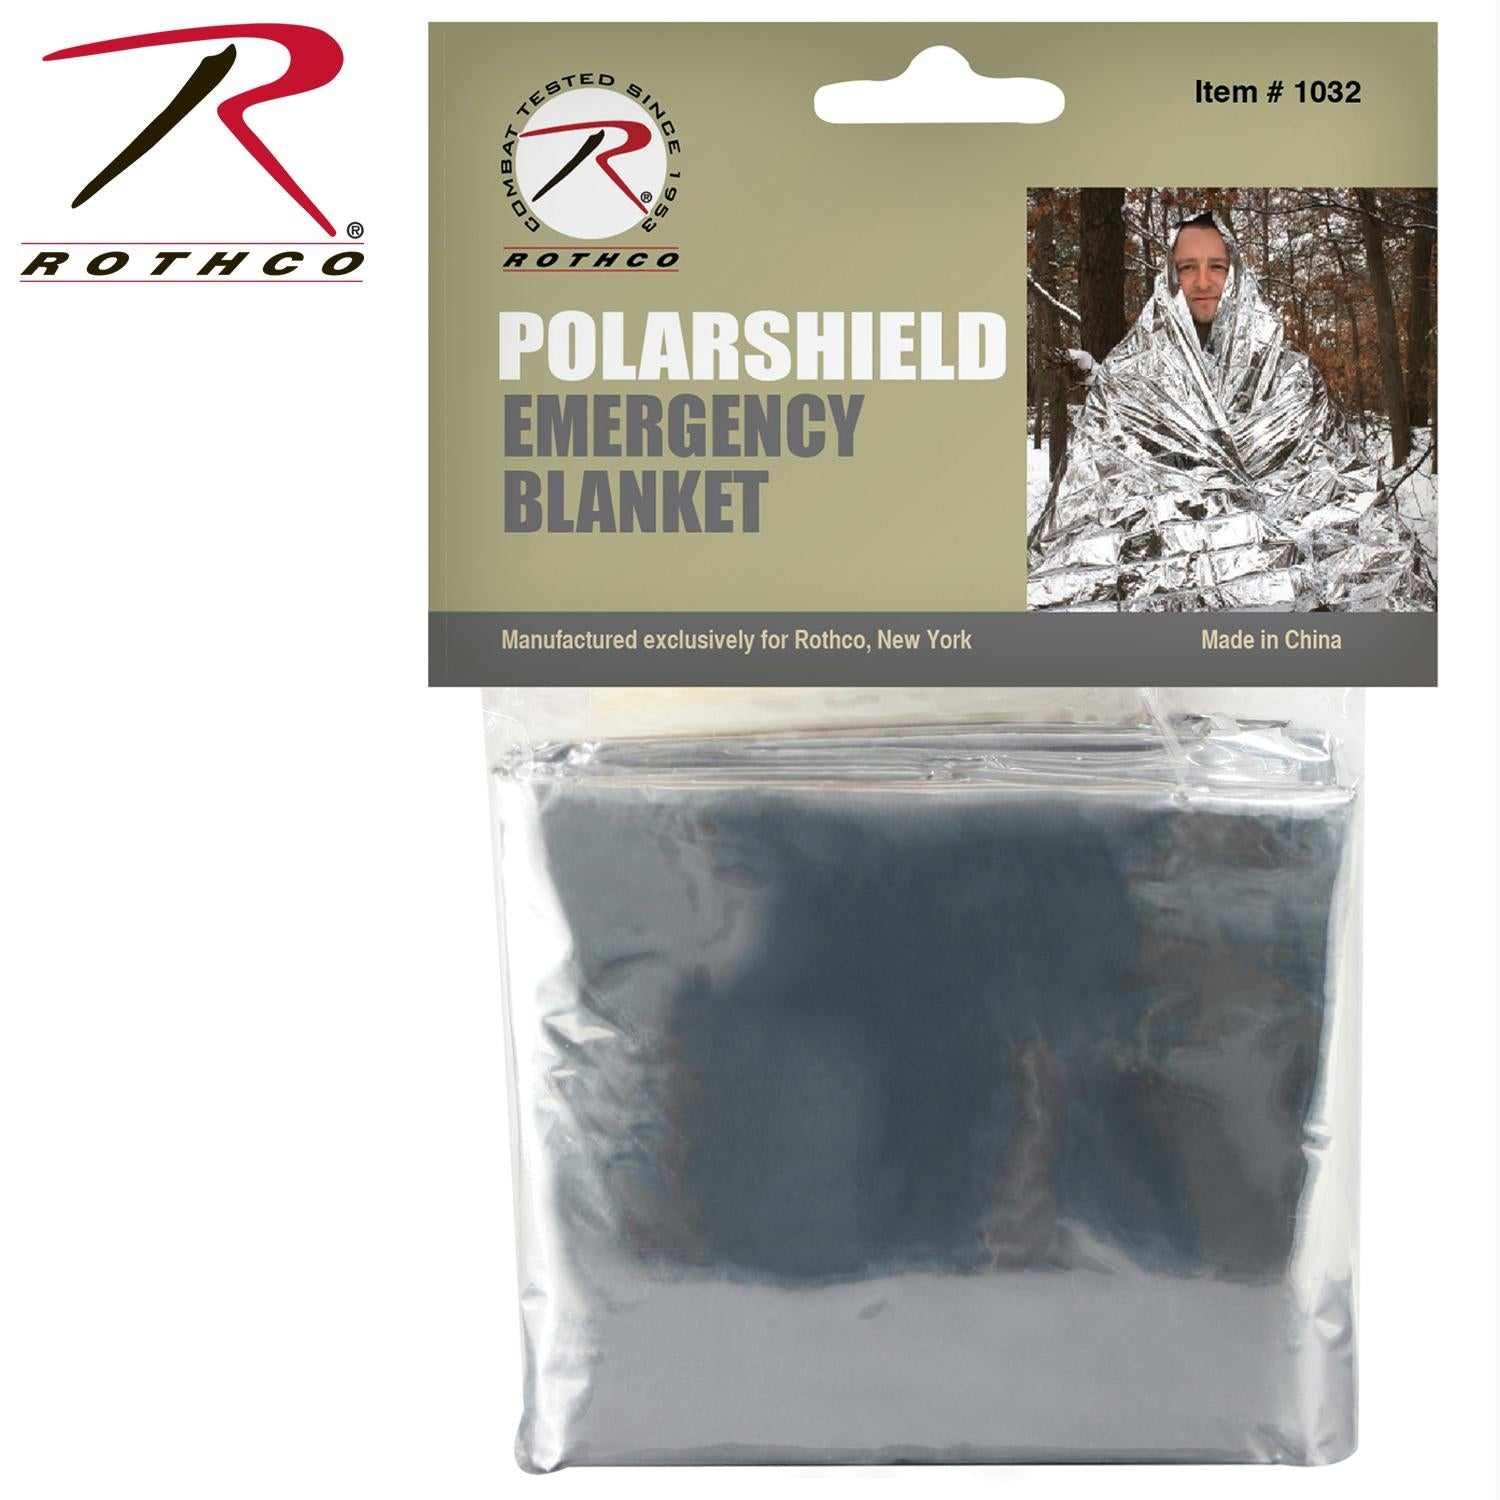 Rothco Polarshield Survival Blankets